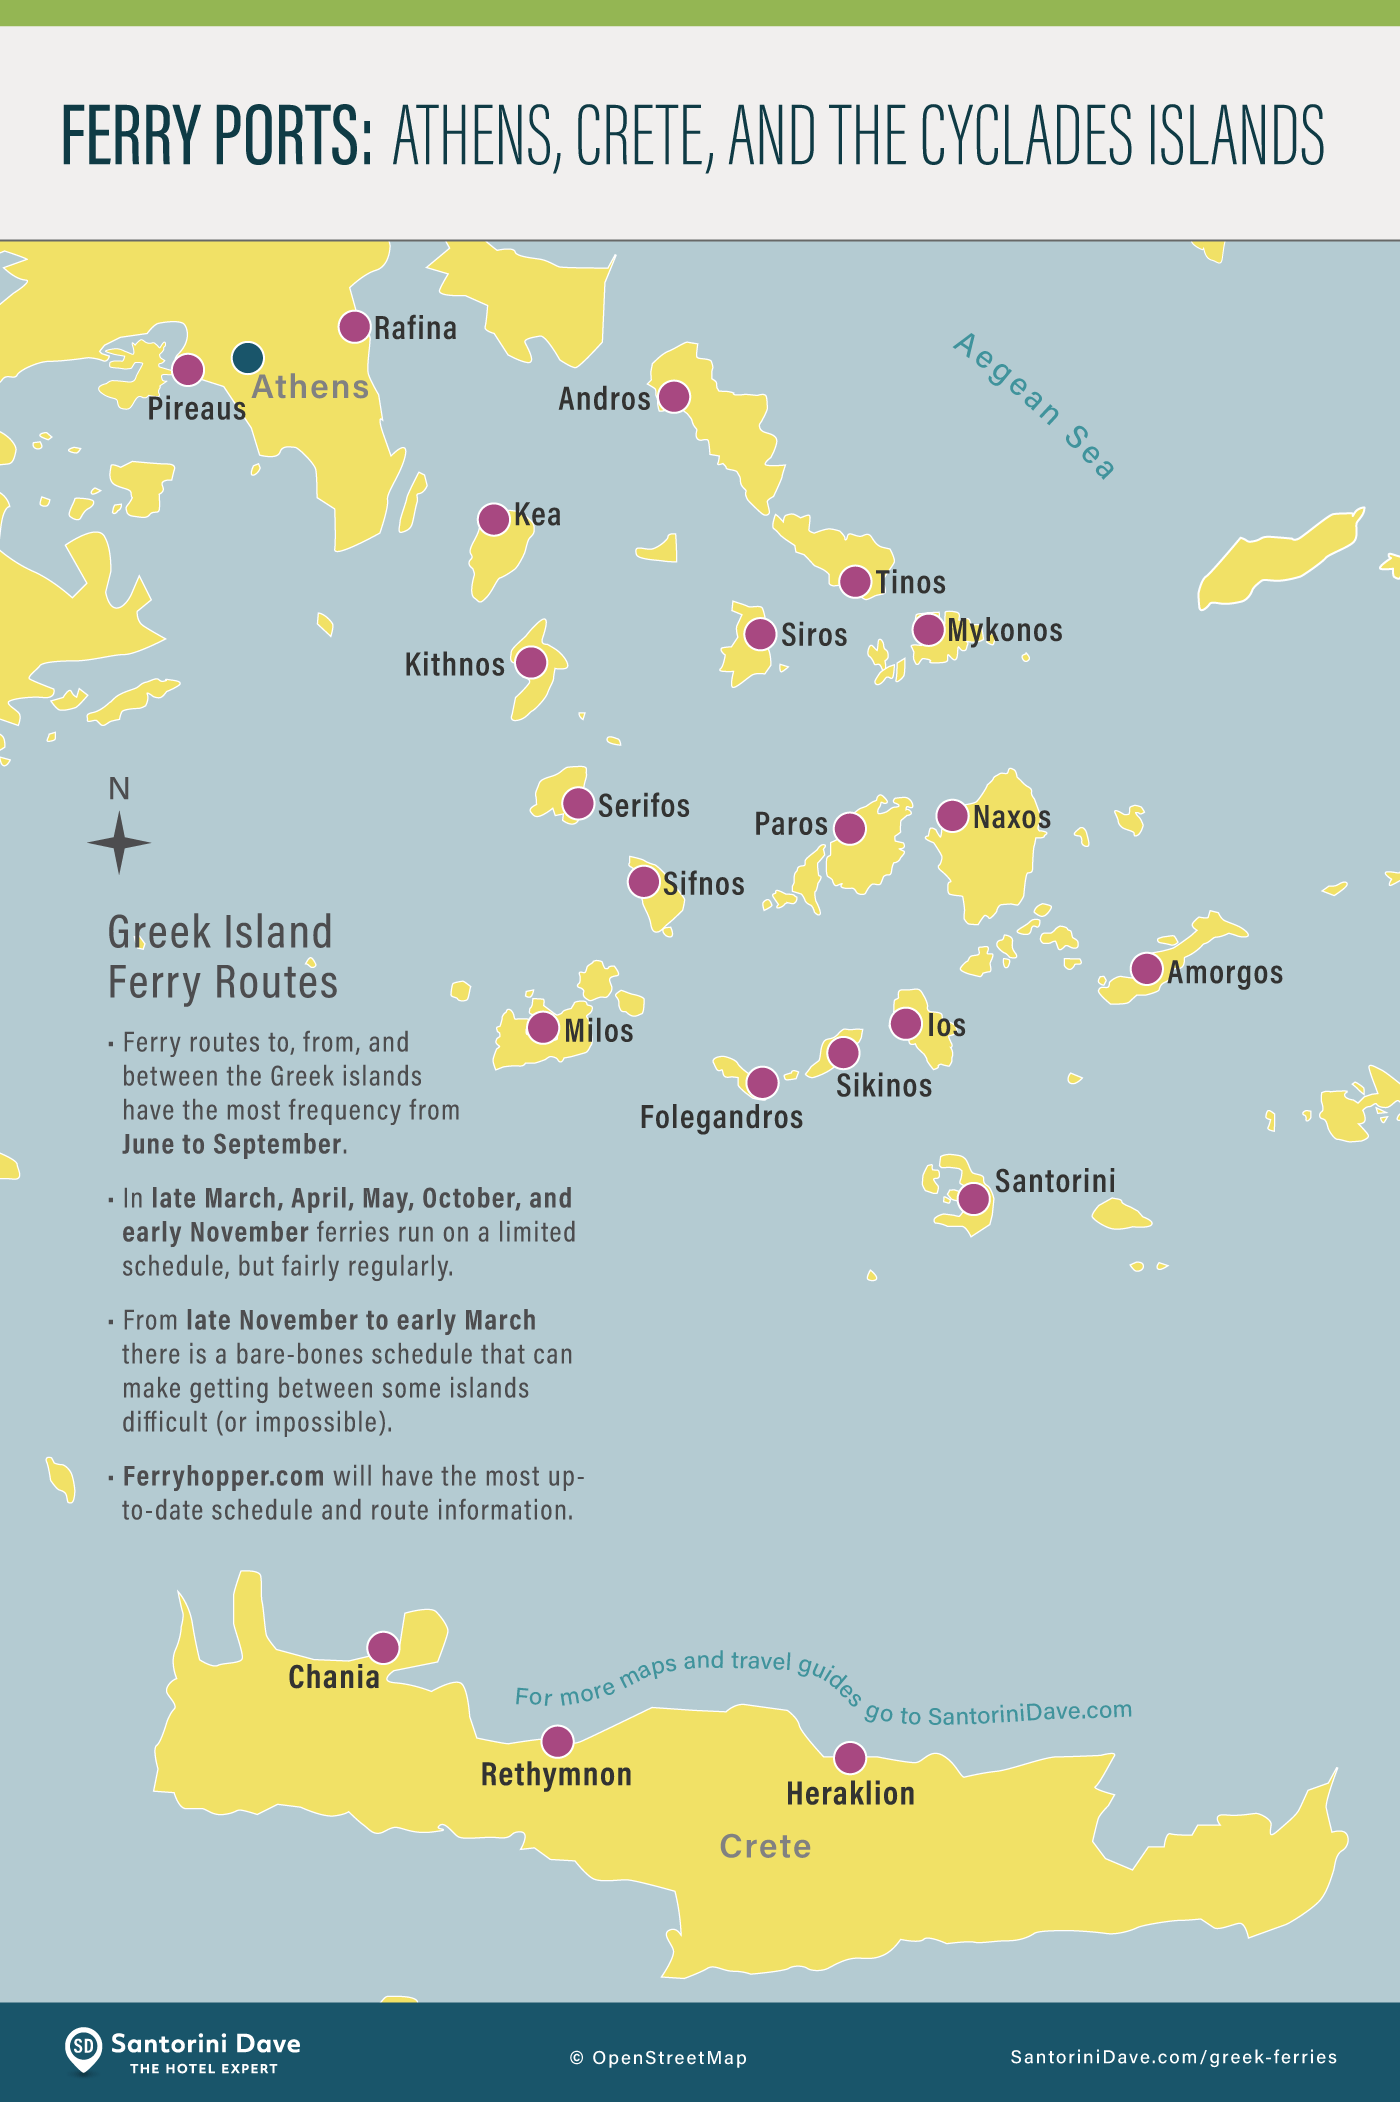 Map showing the ferry ports of the Cyclades islands